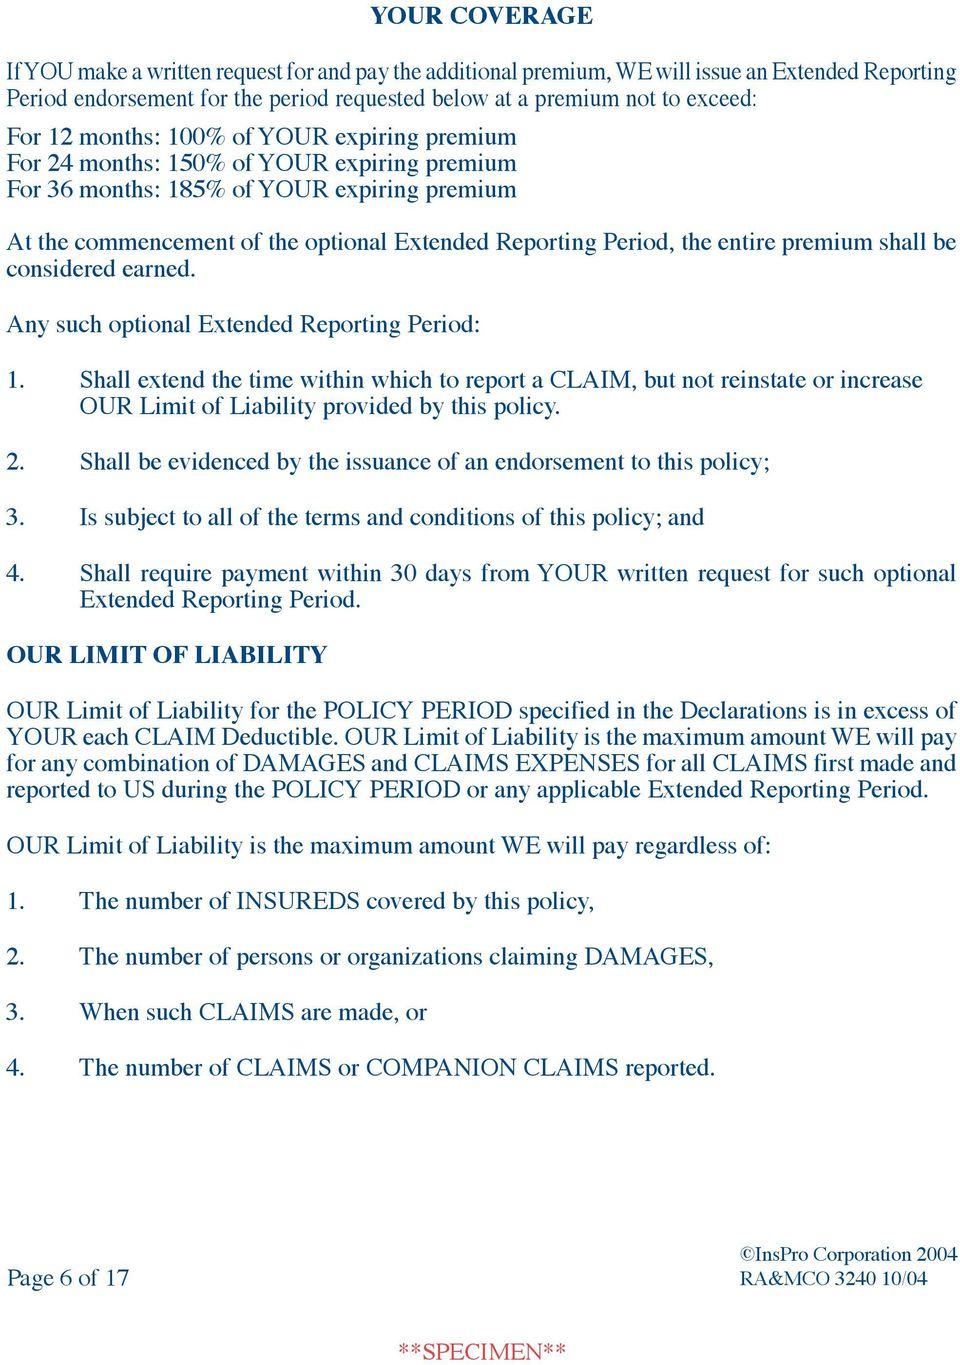 entire premium shall be considered earned. Any such optional Extended Reporting Period: 1.